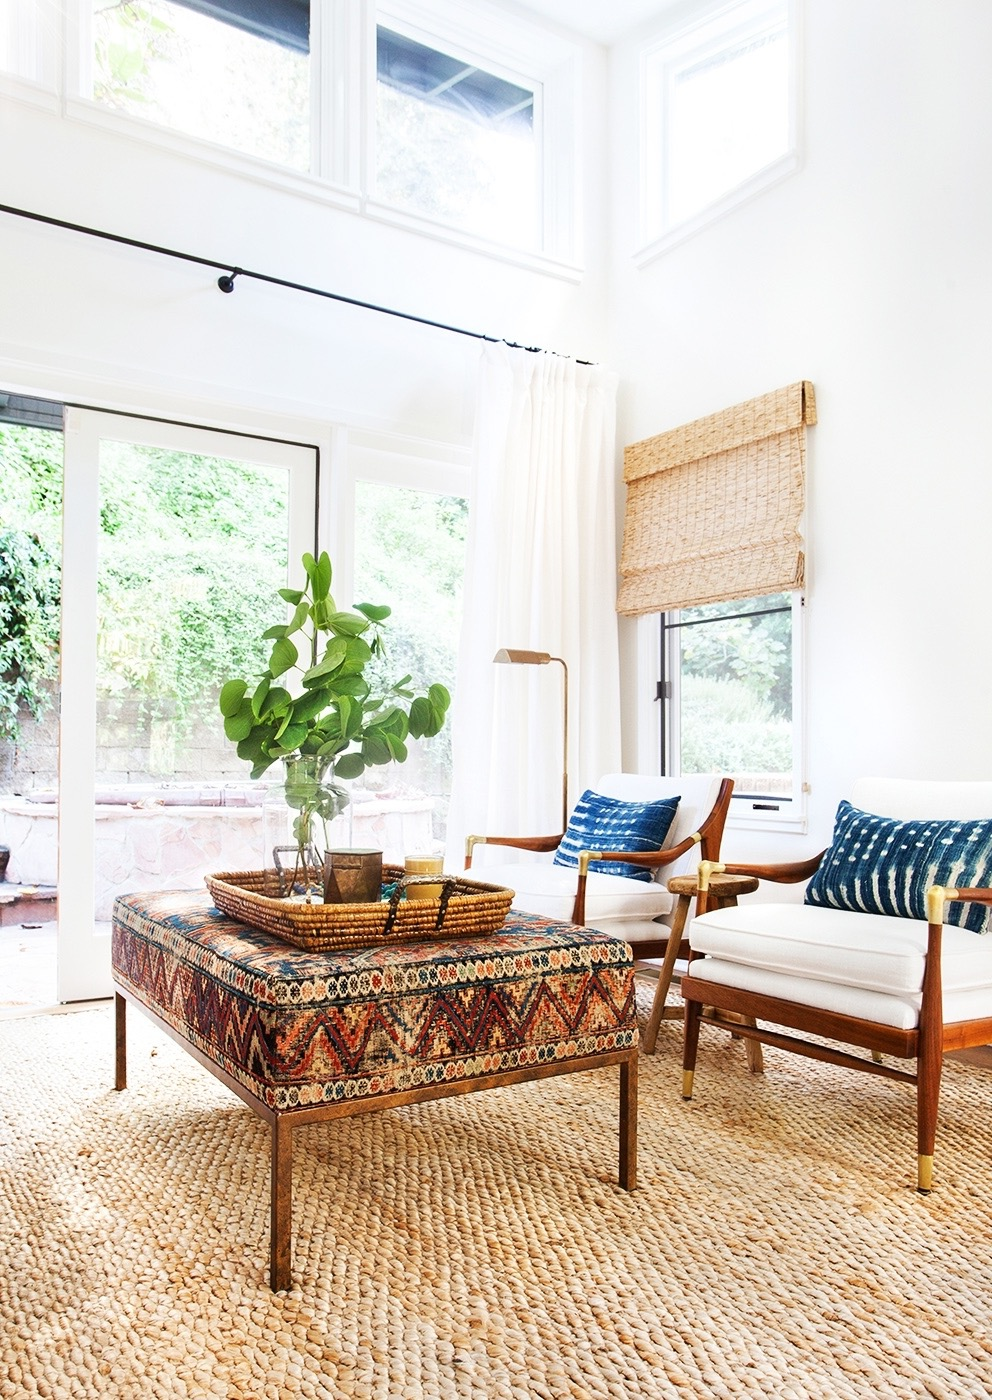 Oriental Living Room Decor With Braided Rugs And Persian Accessories (Image 9 of 15)